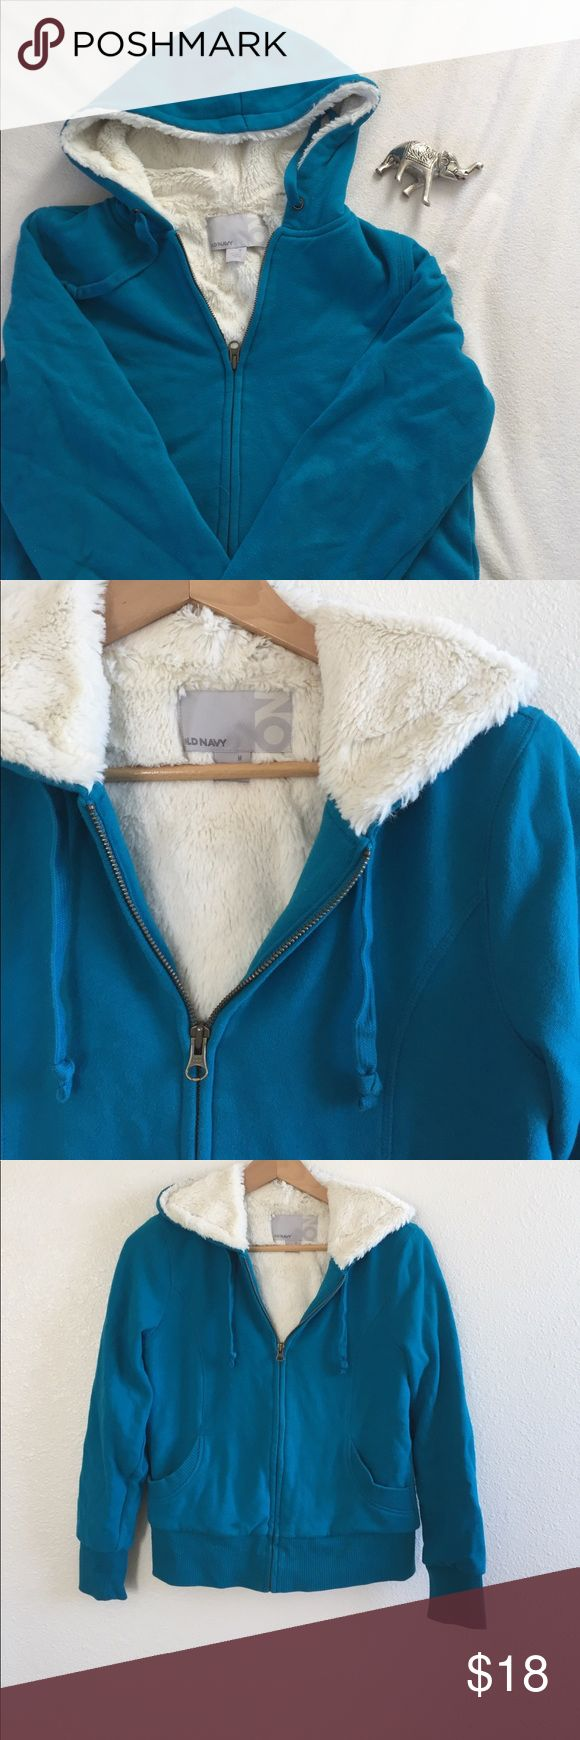 Old Navy Faux Fur hoodie Bright blue/green Hoodie from Old Navy with white faux fur. Very comfortable and warm. Size M. 60% Cotton, 40% Polyester. Old Navy Tops Sweatshirts & Hoodies